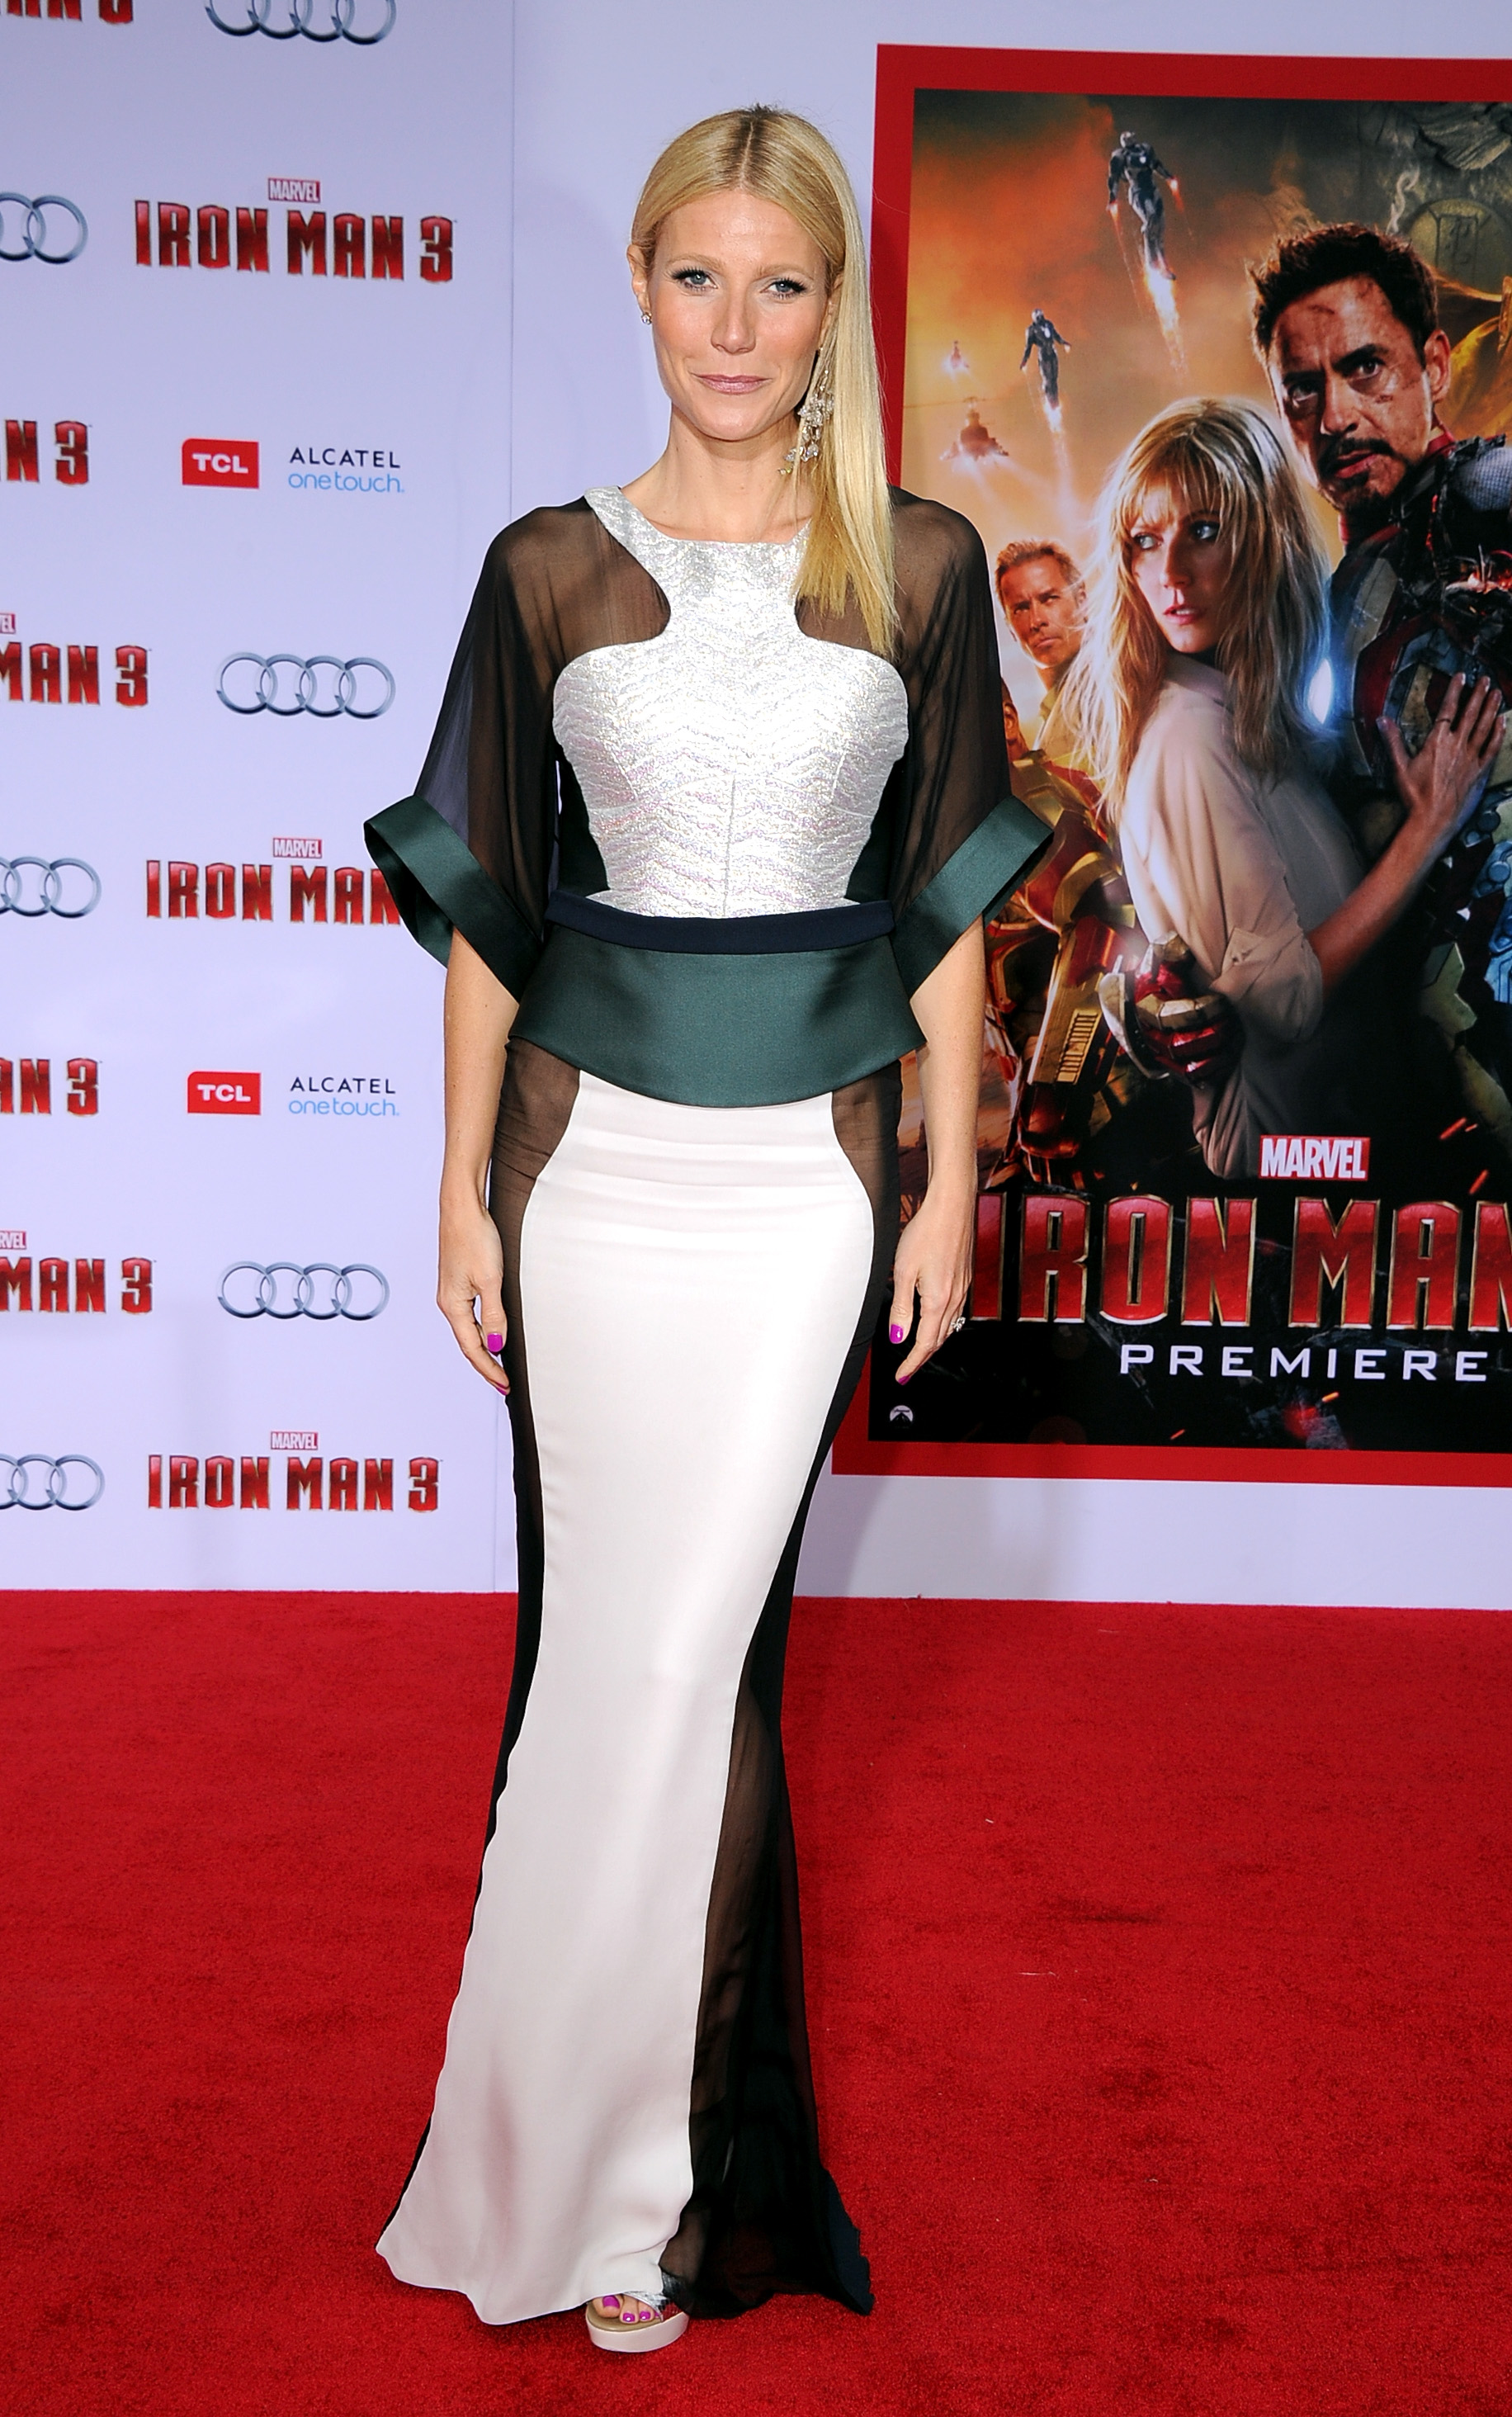 Gwyneth Paltrow walked the red carpet at the LA premiere of Iron Man 3.